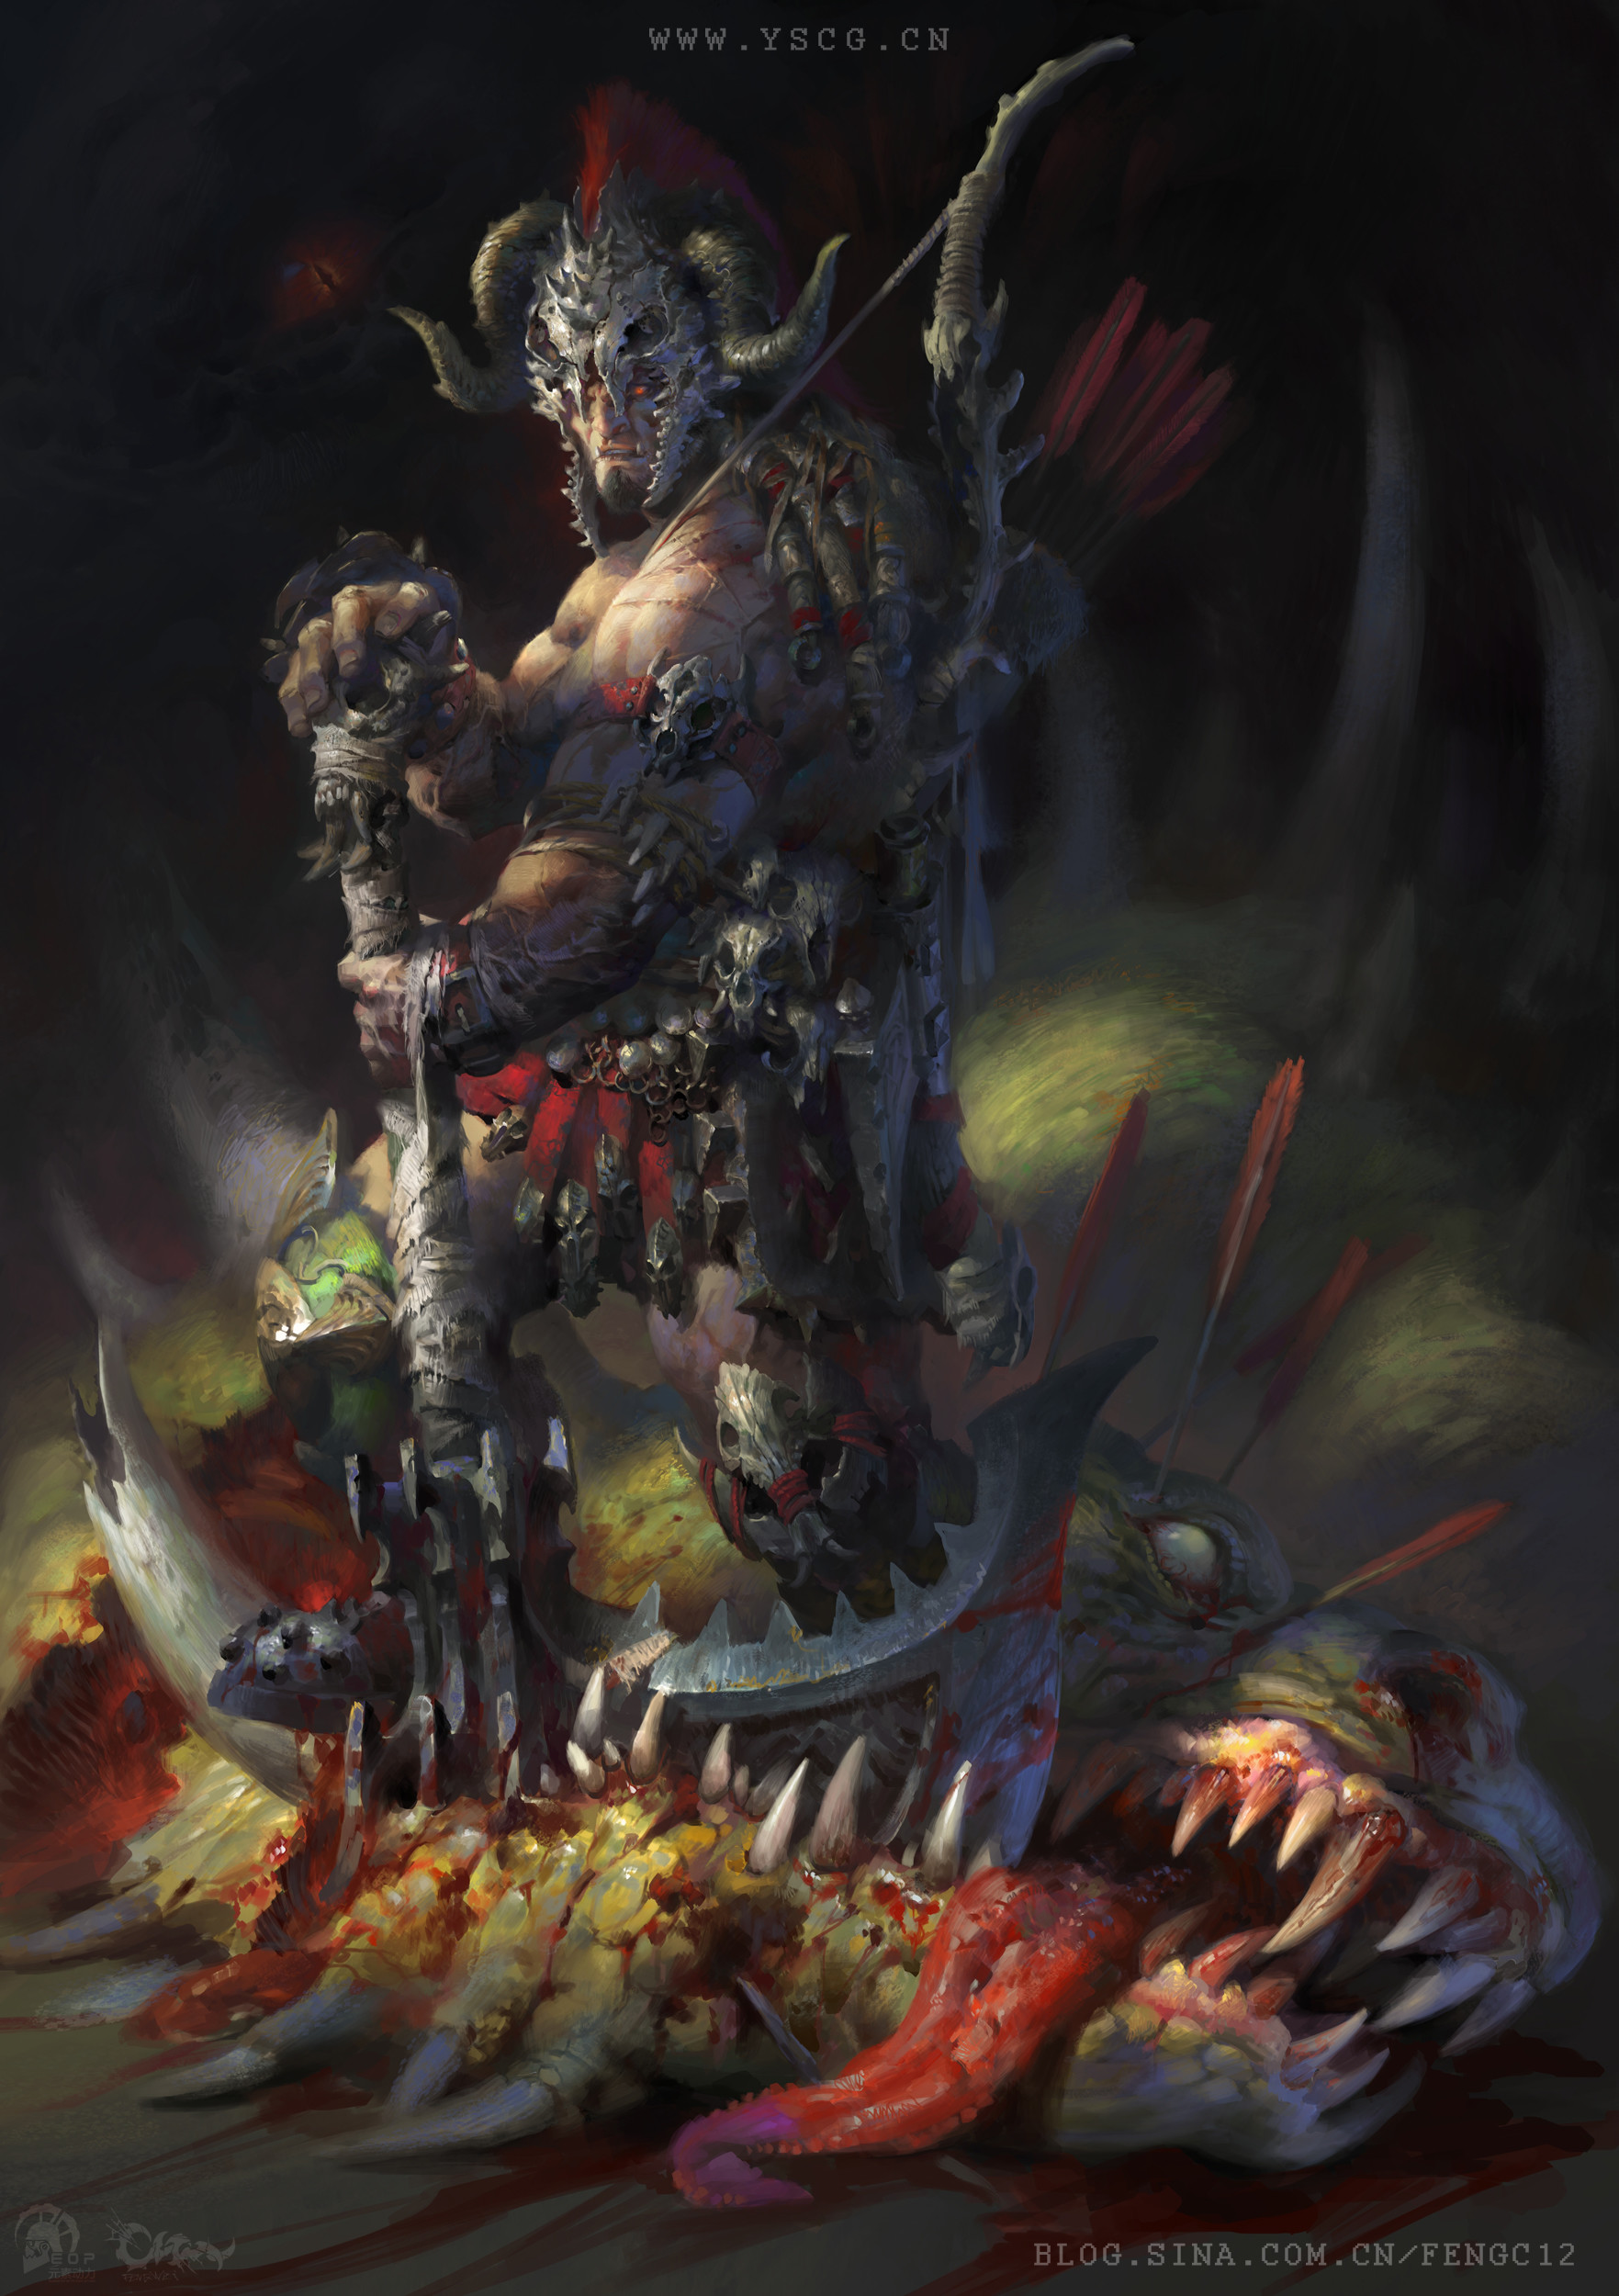 Wei Feng Digital Painting Illustration warrior killing creature